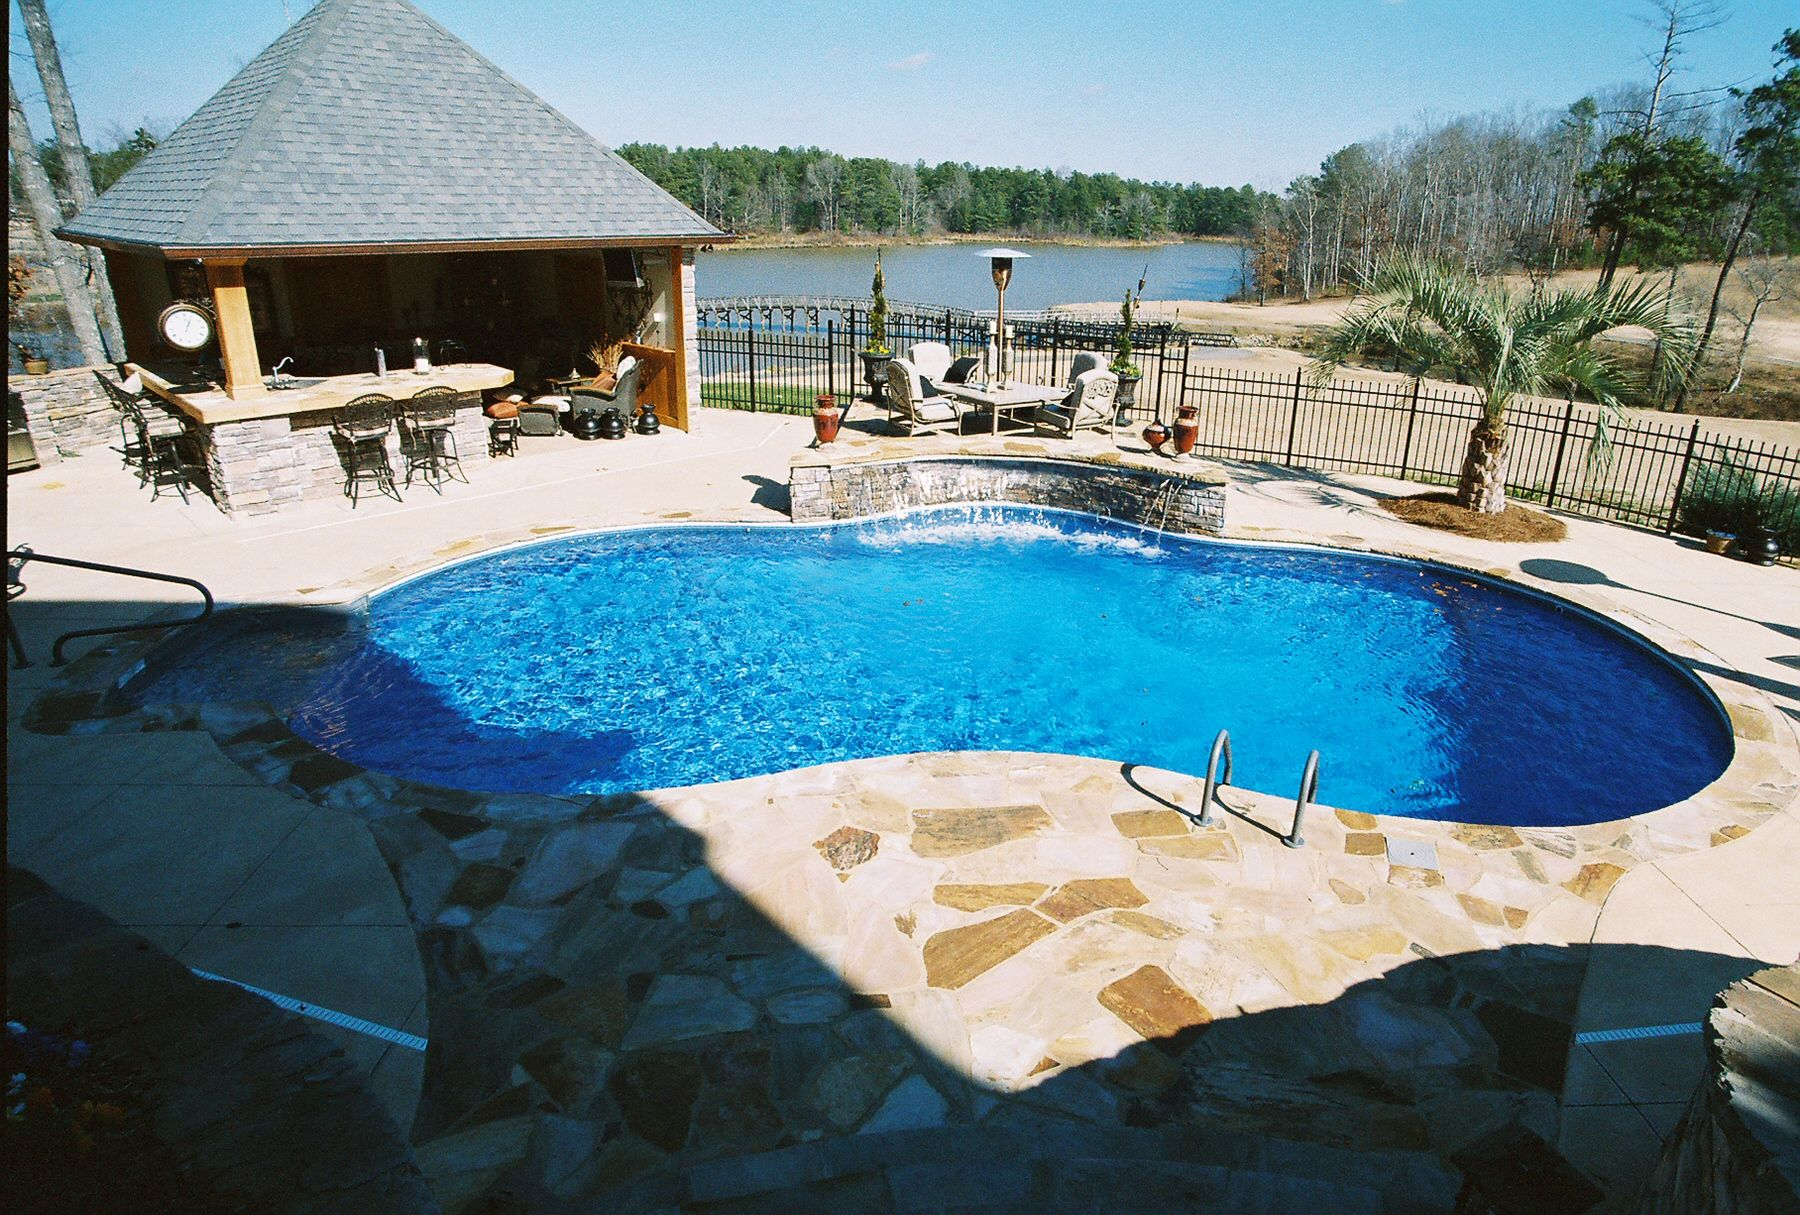 Brown\'s Pools & Spas Gunite Pool with Cabana and Outdoor Kitchen WWW ...